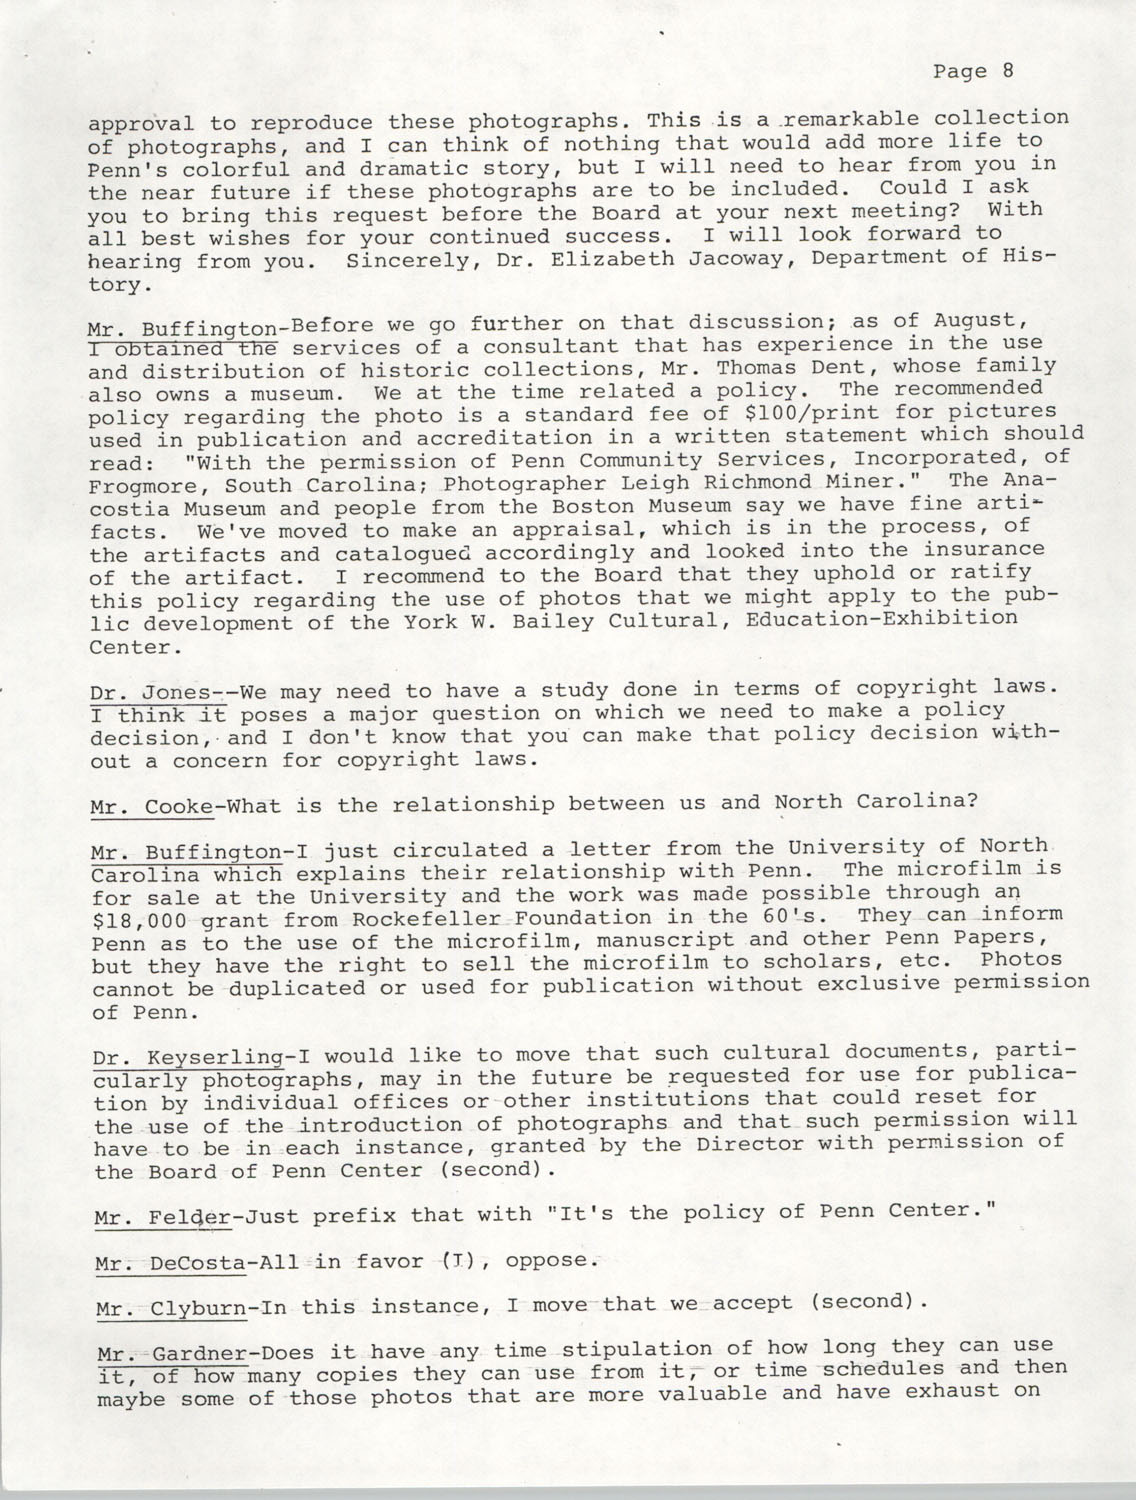 Minutes, Annual Board Meeting, Penn Community Services, October 22, 1977, Page 8